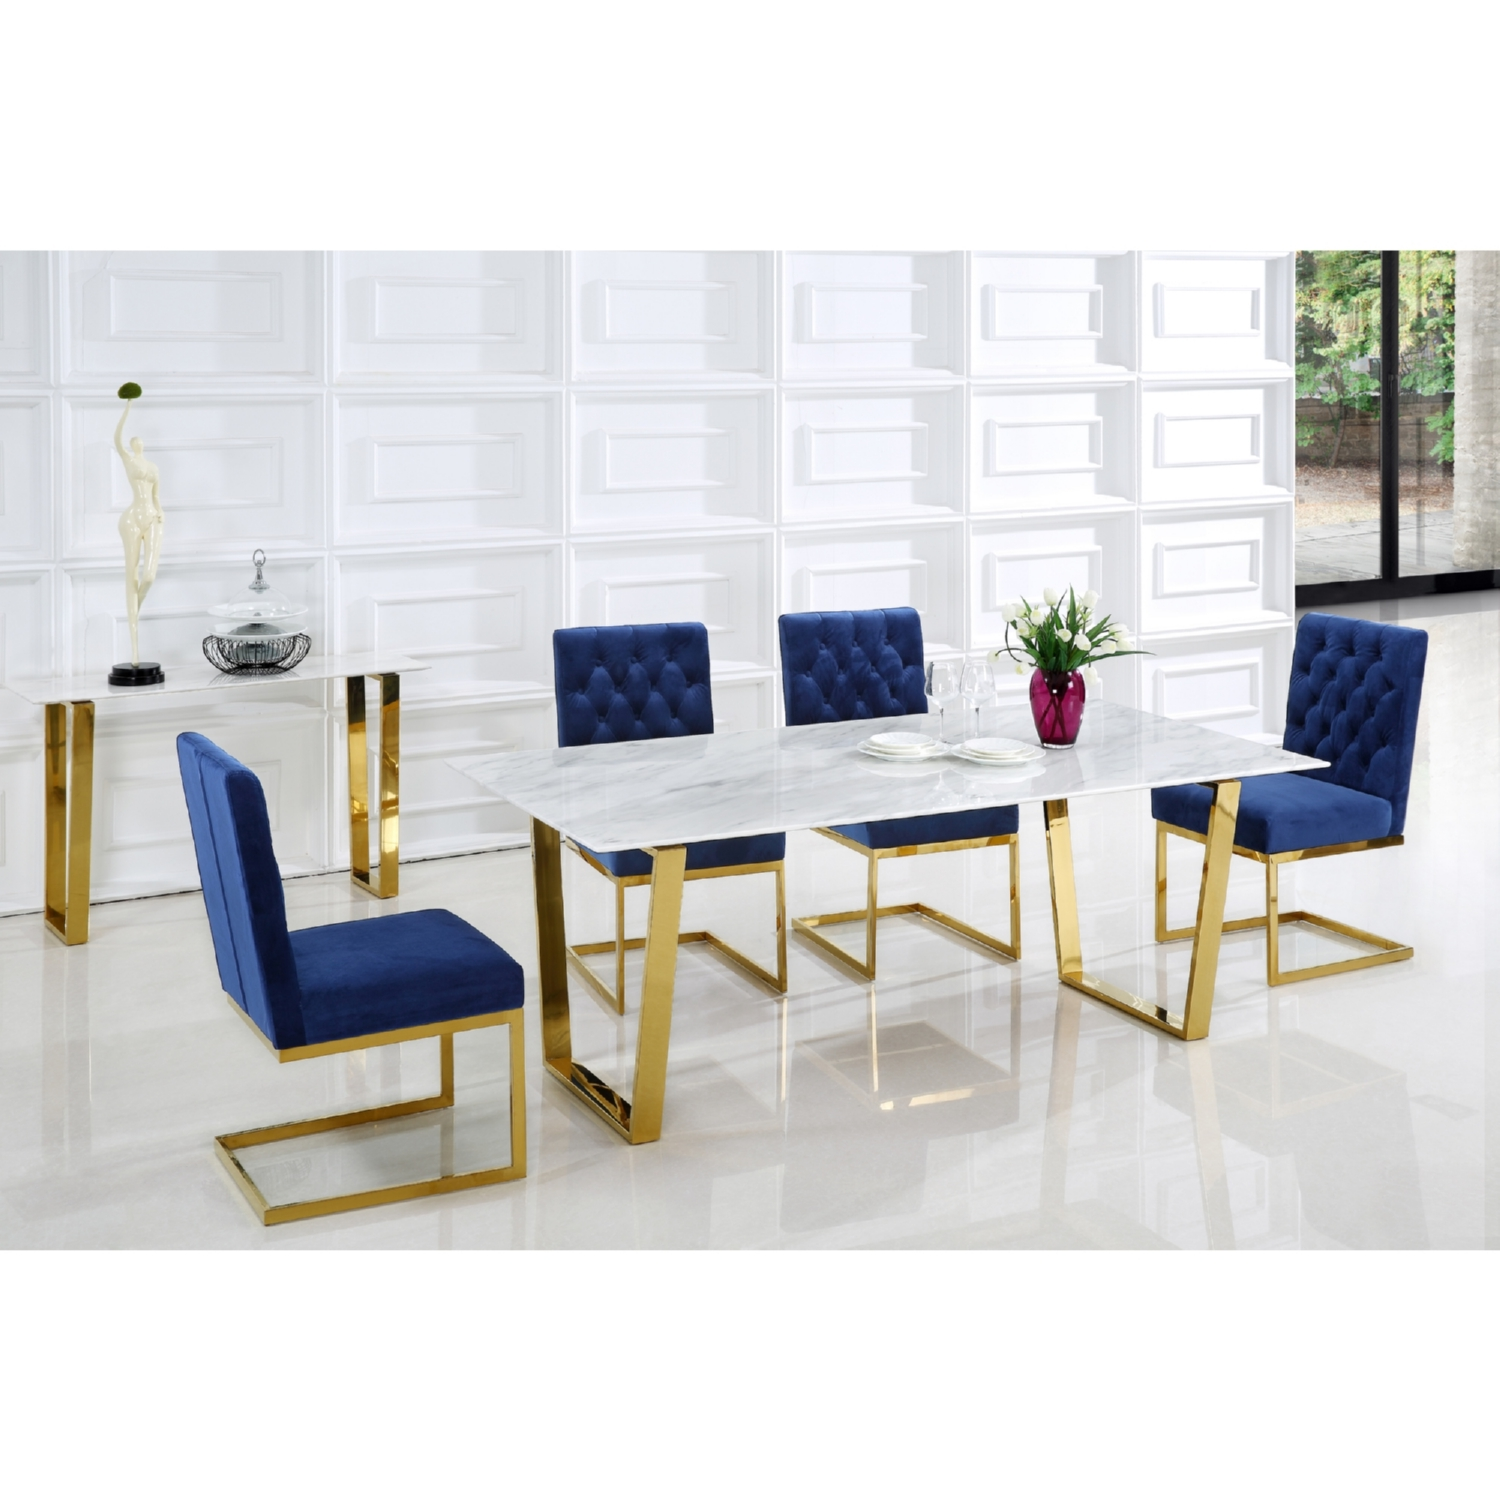 "Meridian Furniture 712 T Cameron 78"" Gold Stainless Steel Dining"